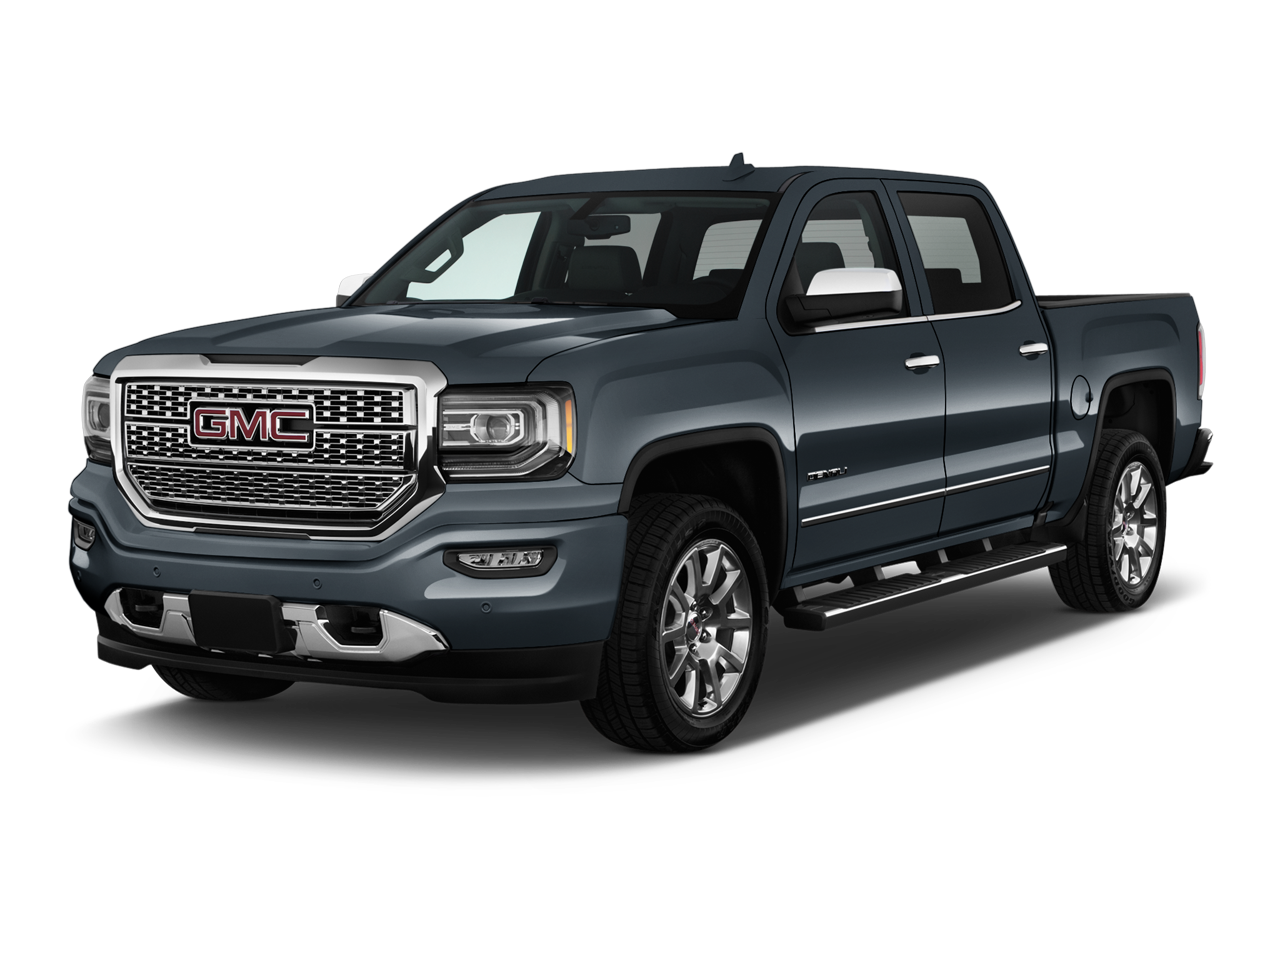 new 2017 gmc sierra 1500 denali near youngstown oh sweeney chevy buick gmc. Black Bedroom Furniture Sets. Home Design Ideas